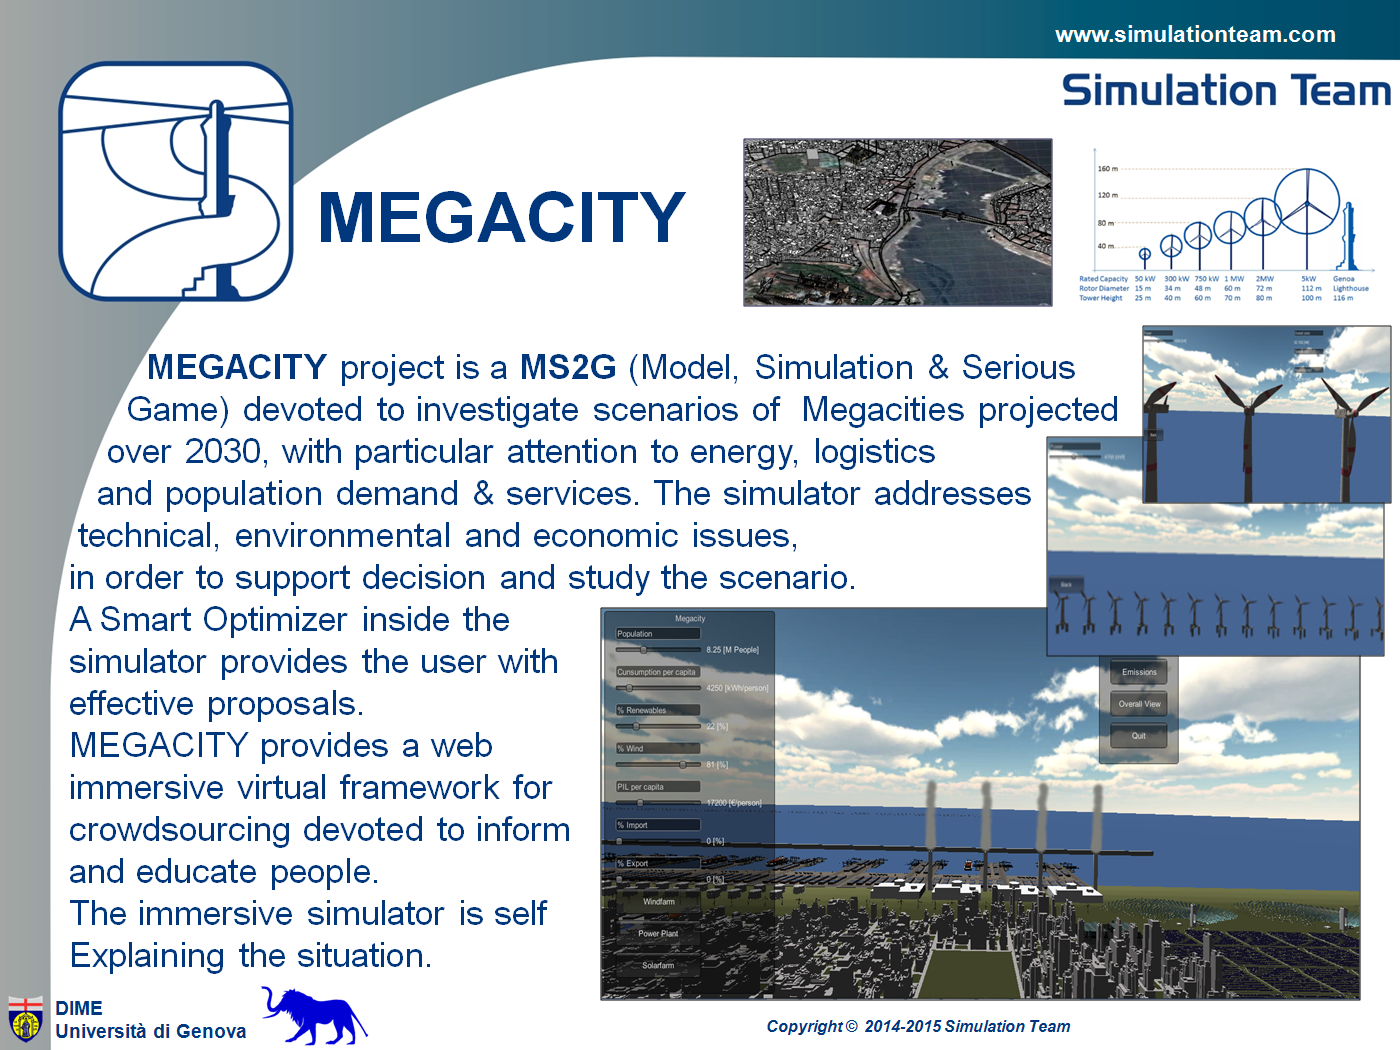 megacity problems Megacities 13 november 2015  mayors' c40 summit gives megacity leaders a chance to grab global spotlight  the philippine capital highlights the problems it brings published: 15 oct 2010.